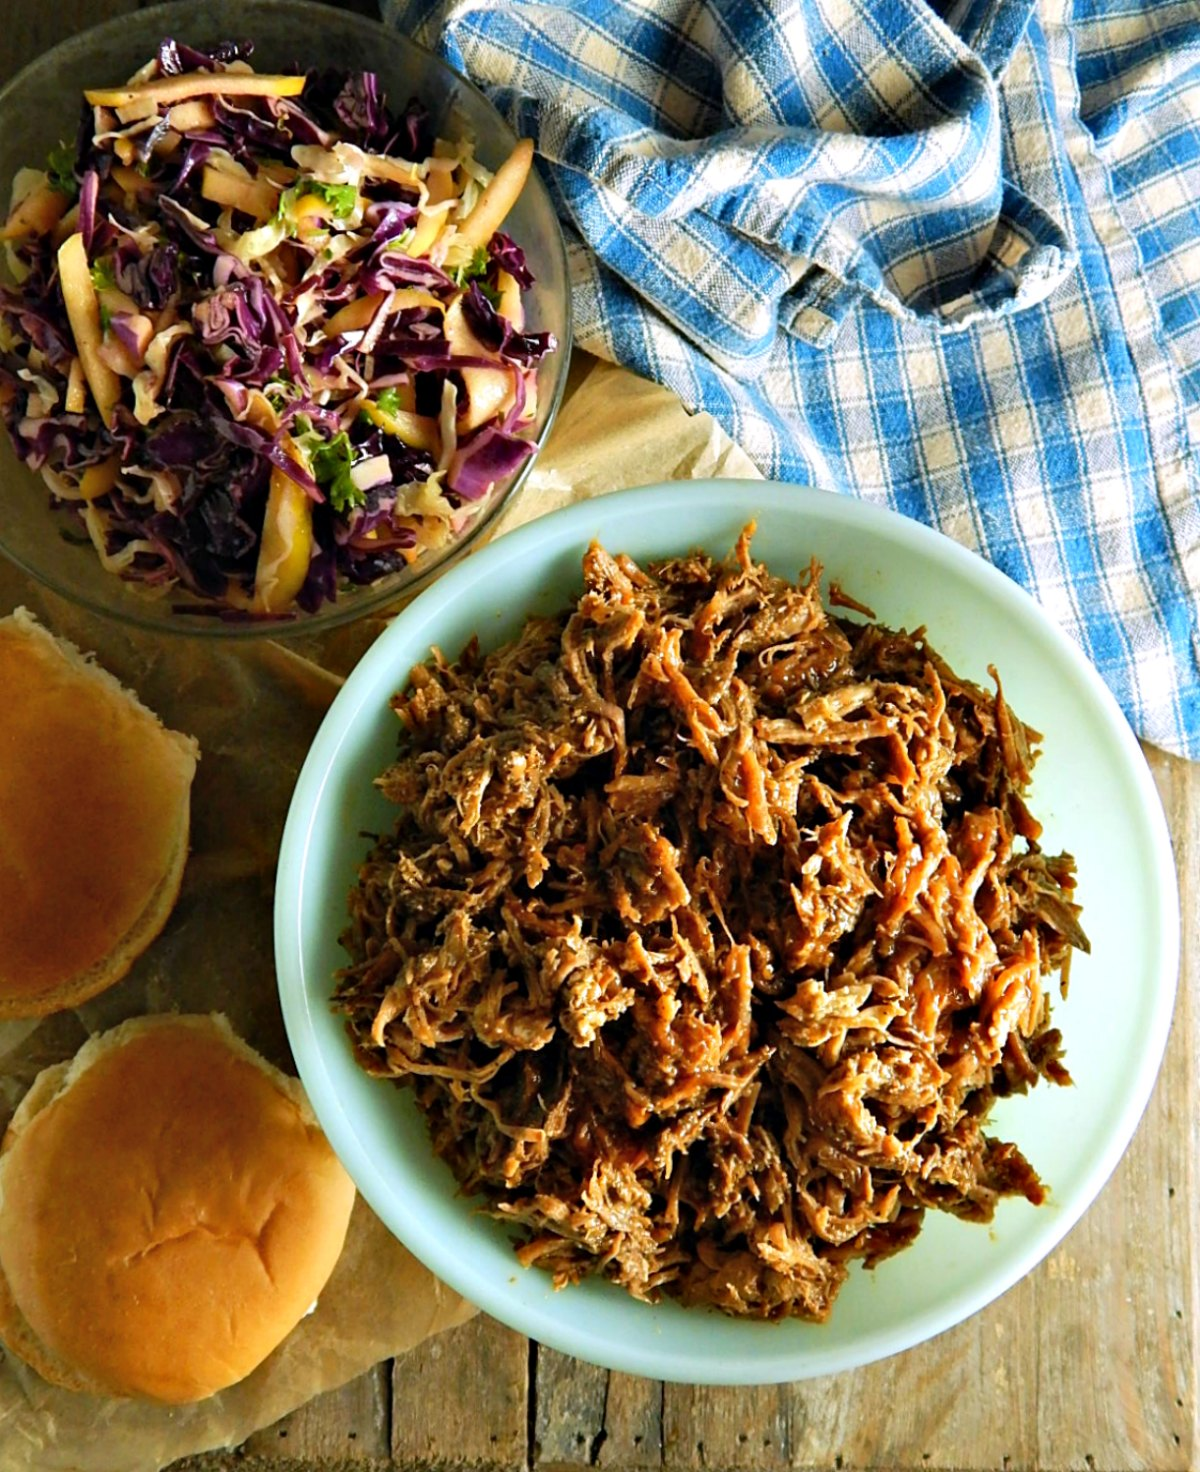 Crock Pot Slow Cooker Pulled Pork or Brisket